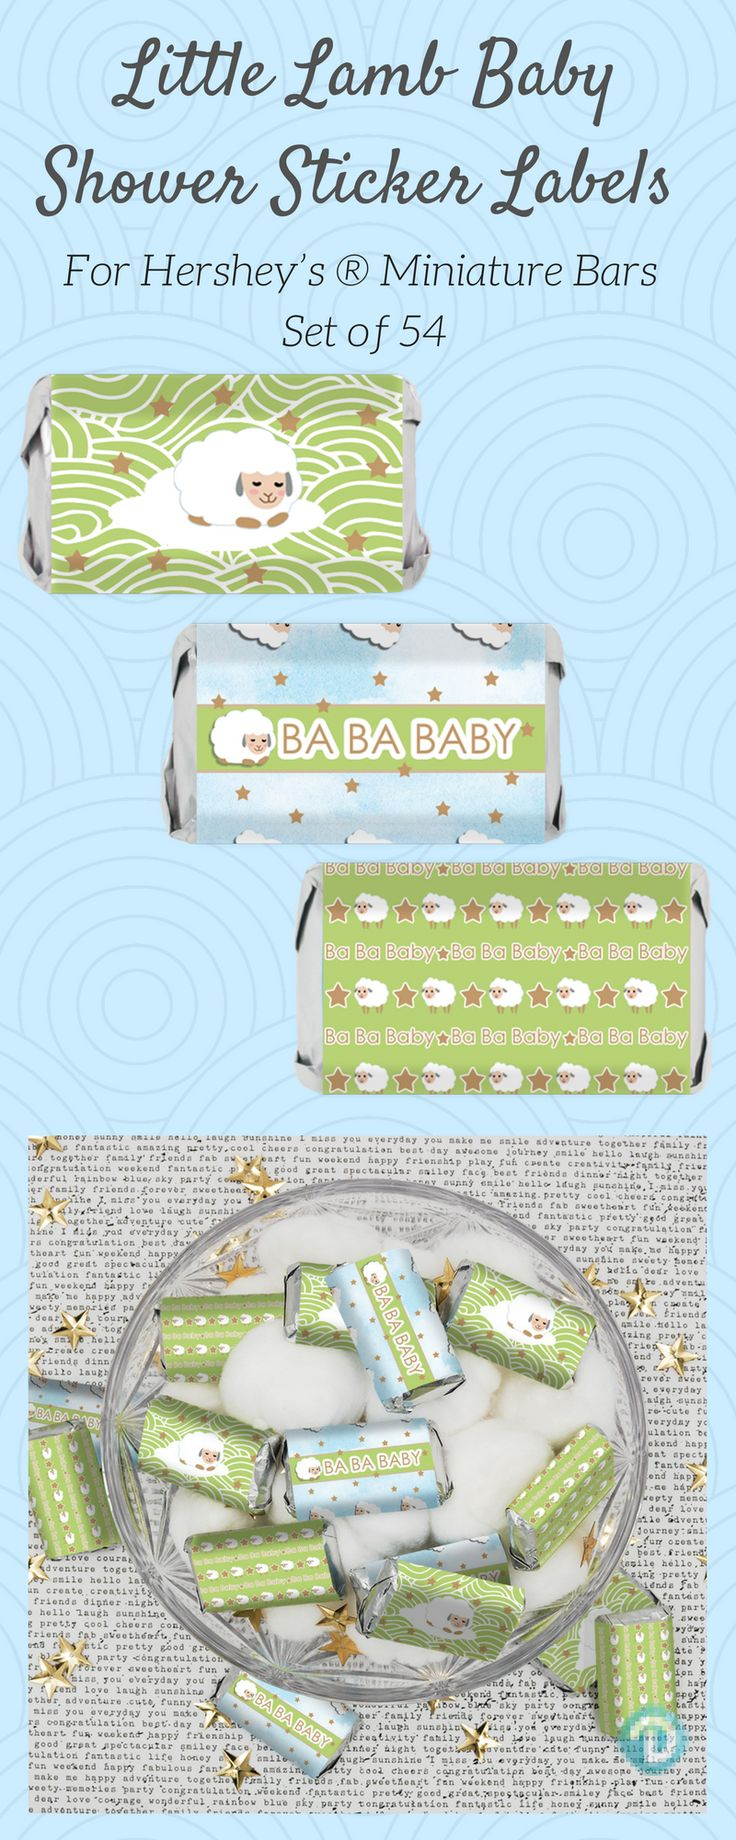 These blue, green, and brown Little Lamb Baby Shower Stickers are made to perfectly wrap around Hershey's Miniatures Bars.